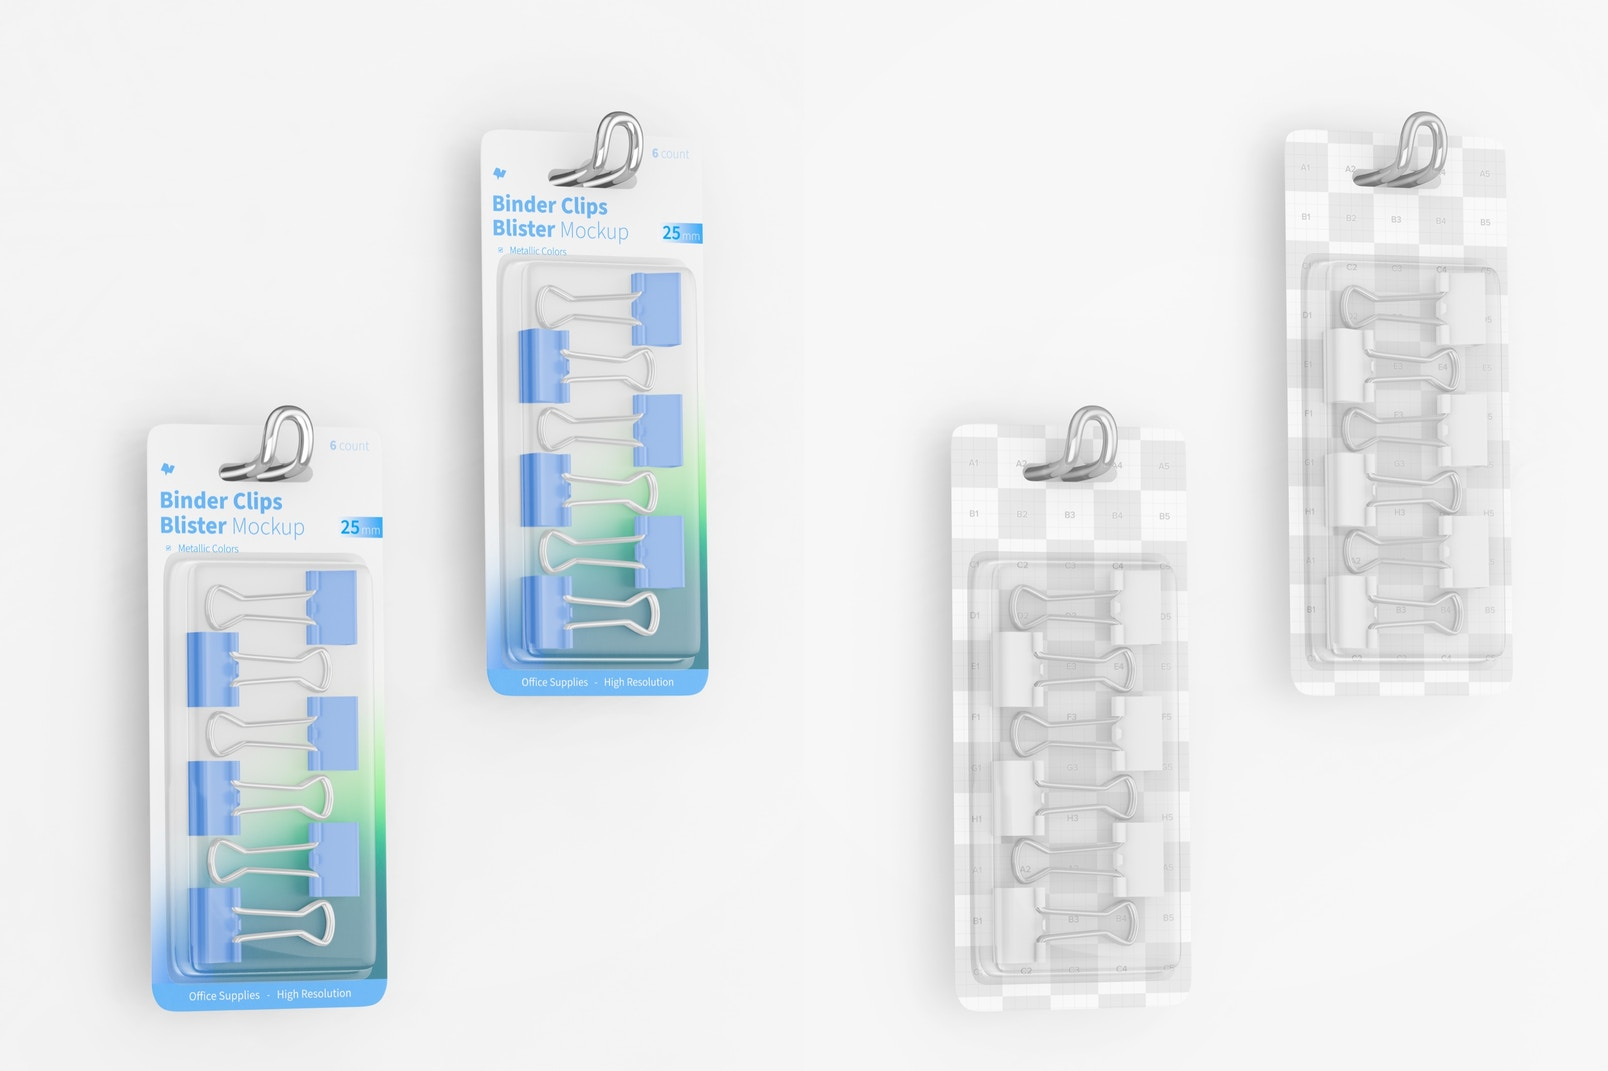 Binder Clips Blister Mockup, Hanging on wall